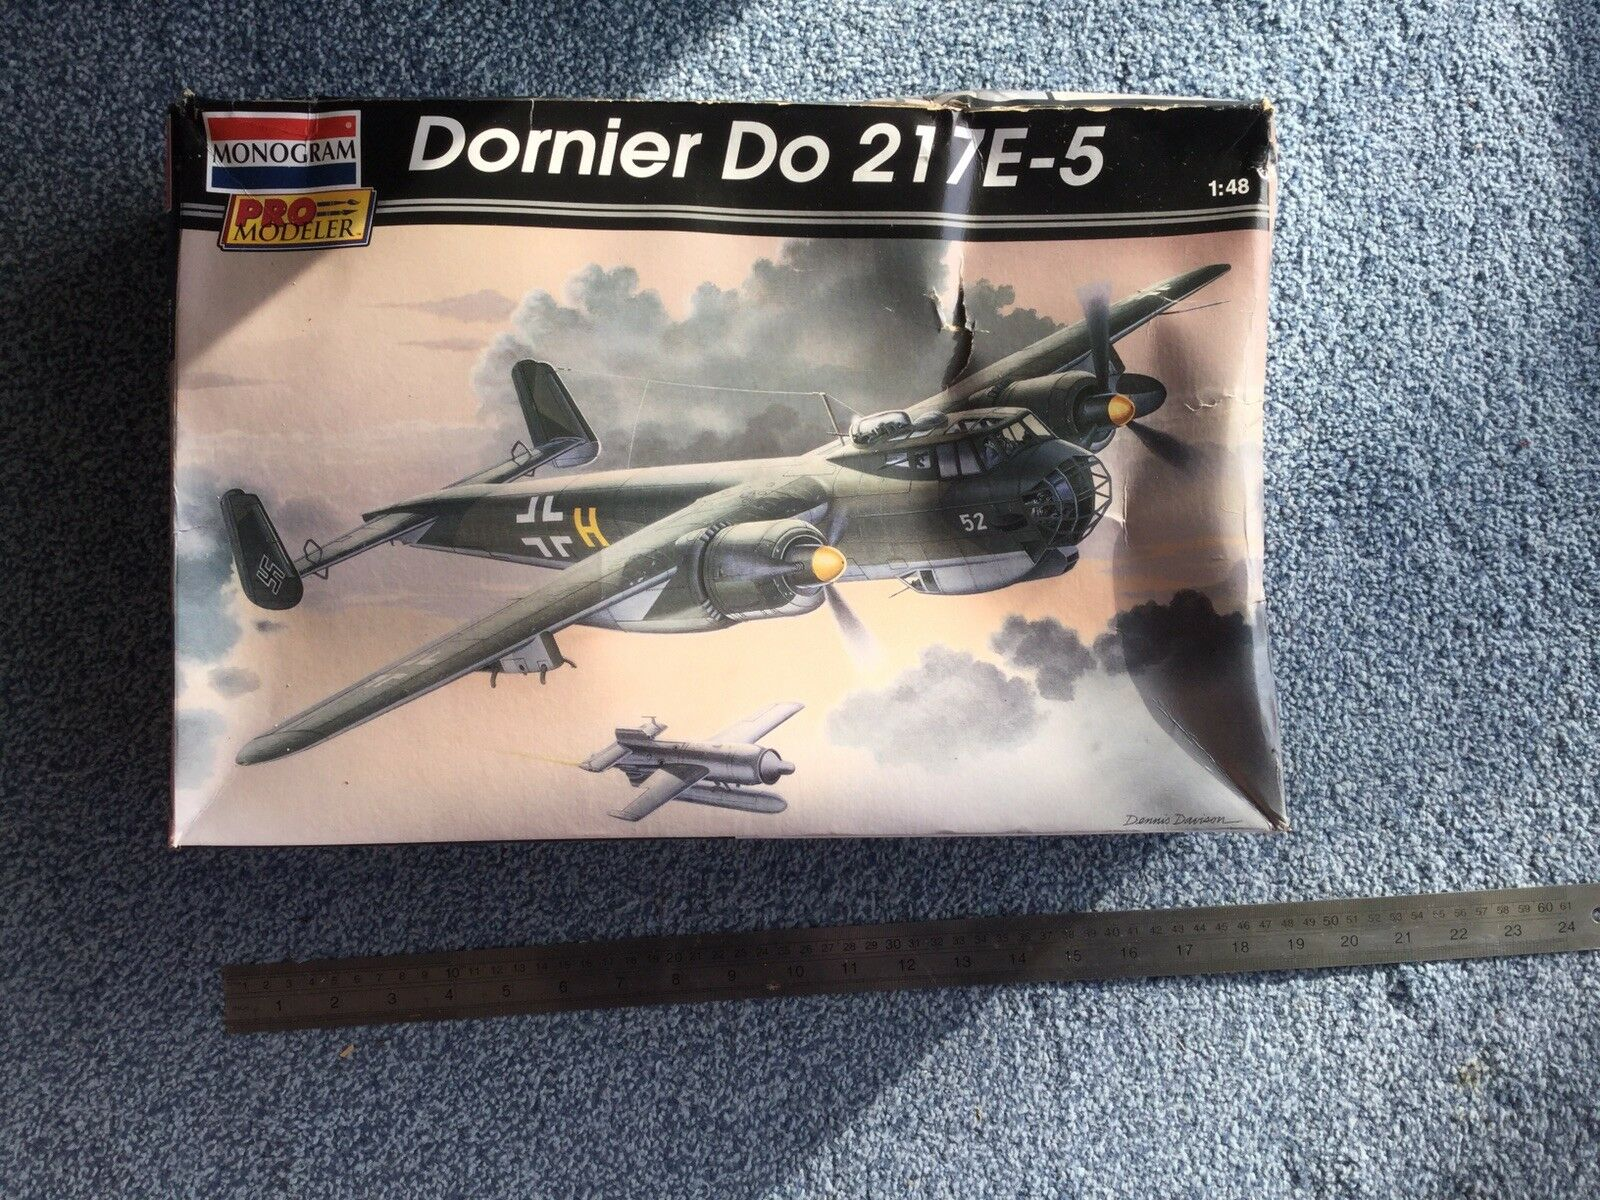 Revell Monogram 1 48 Dornier 217E-5 model kit